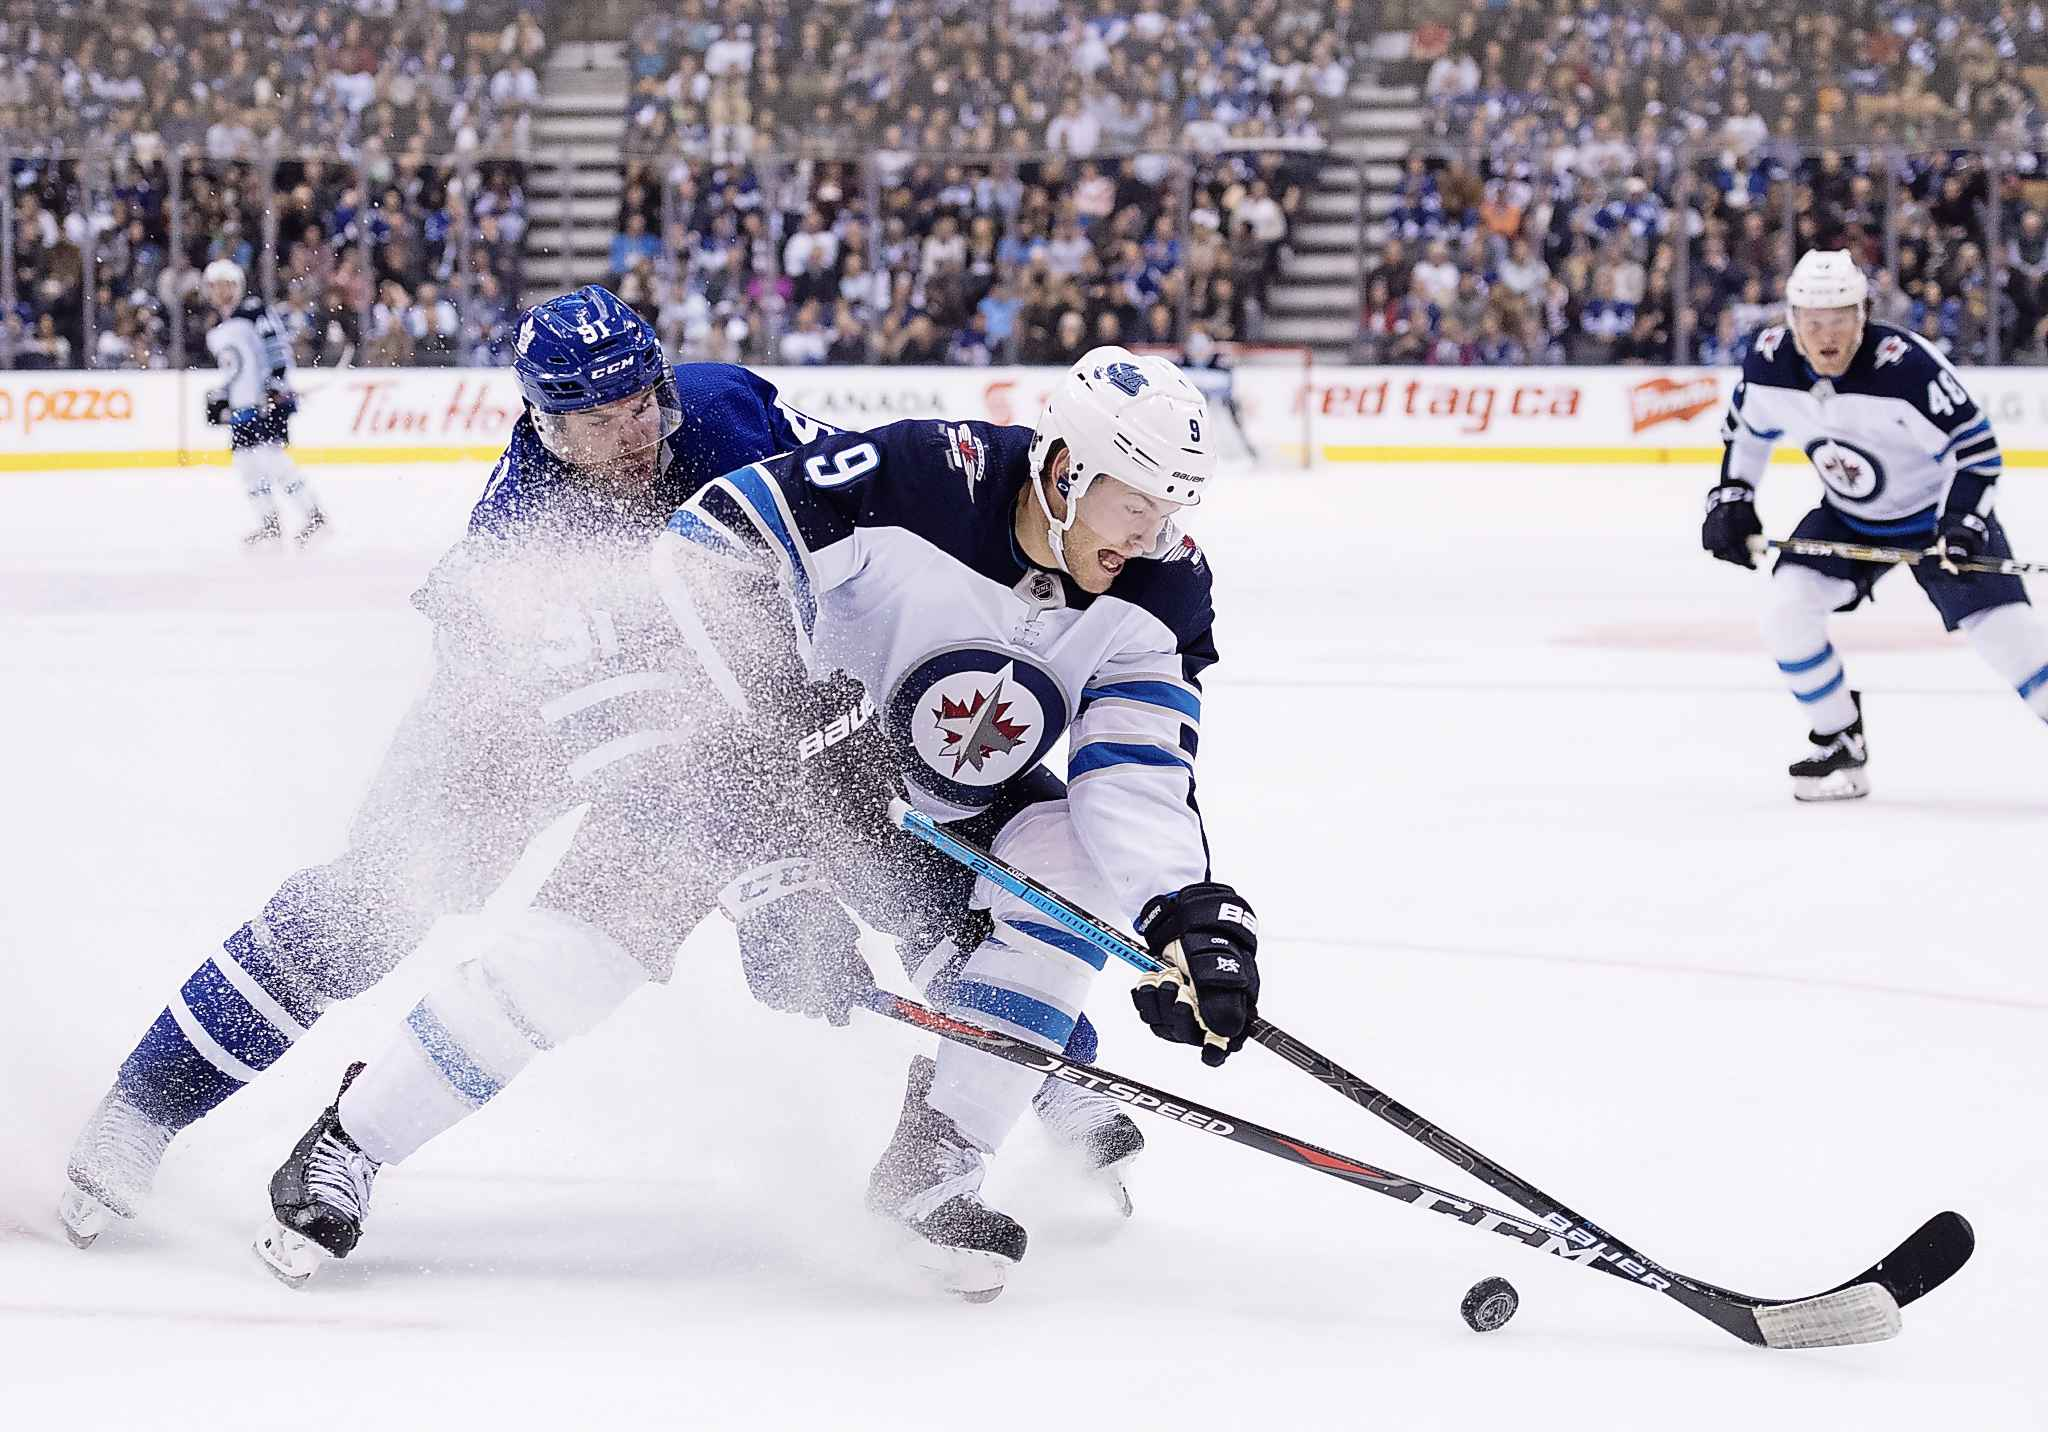 Toronto Maple Leafs centre John Tavares (91) and Winnipeg Jets centre Andrew Copp (9) battles for the puck during second period NHL hockey action in Toronto on Saturday, October 27, 2018. THE CANADIAN PRESS/Nathan Denette